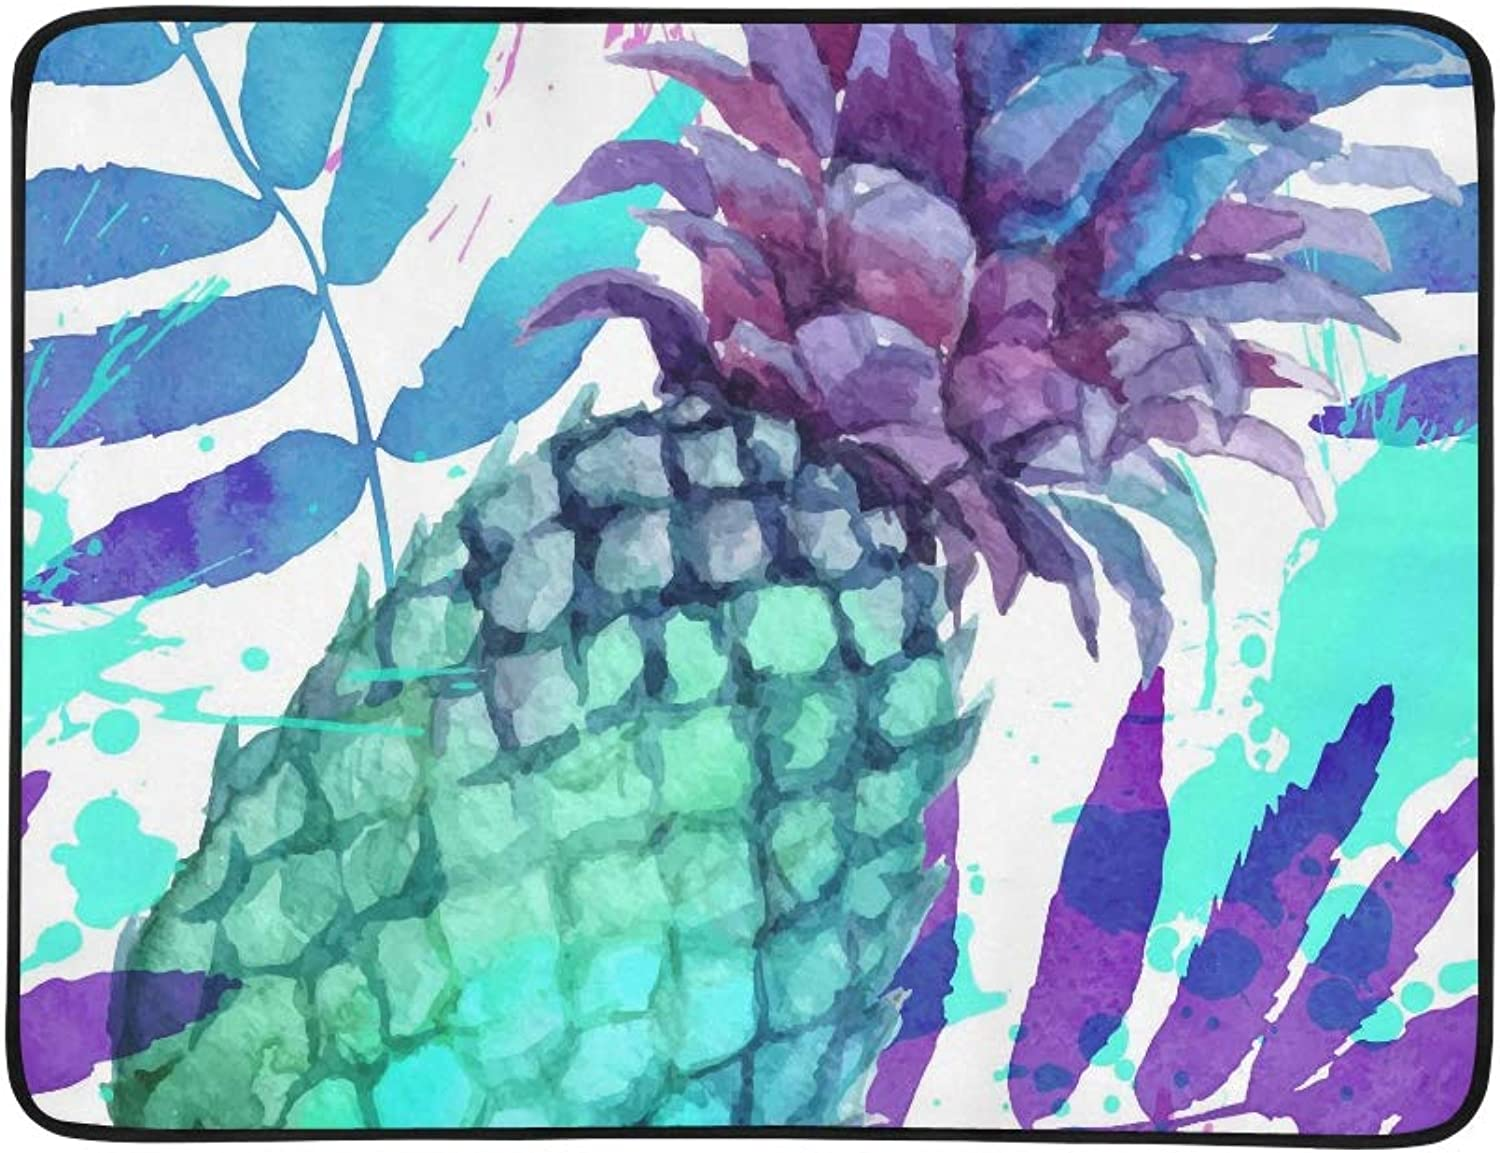 Watercolor Painted Vivid colors Pineapples and Lea Pattern Portable and Foldable Blanket Mat 60x78 Inch Handy Mat for Camping Picnic Beach Indoor Outdoor Travel